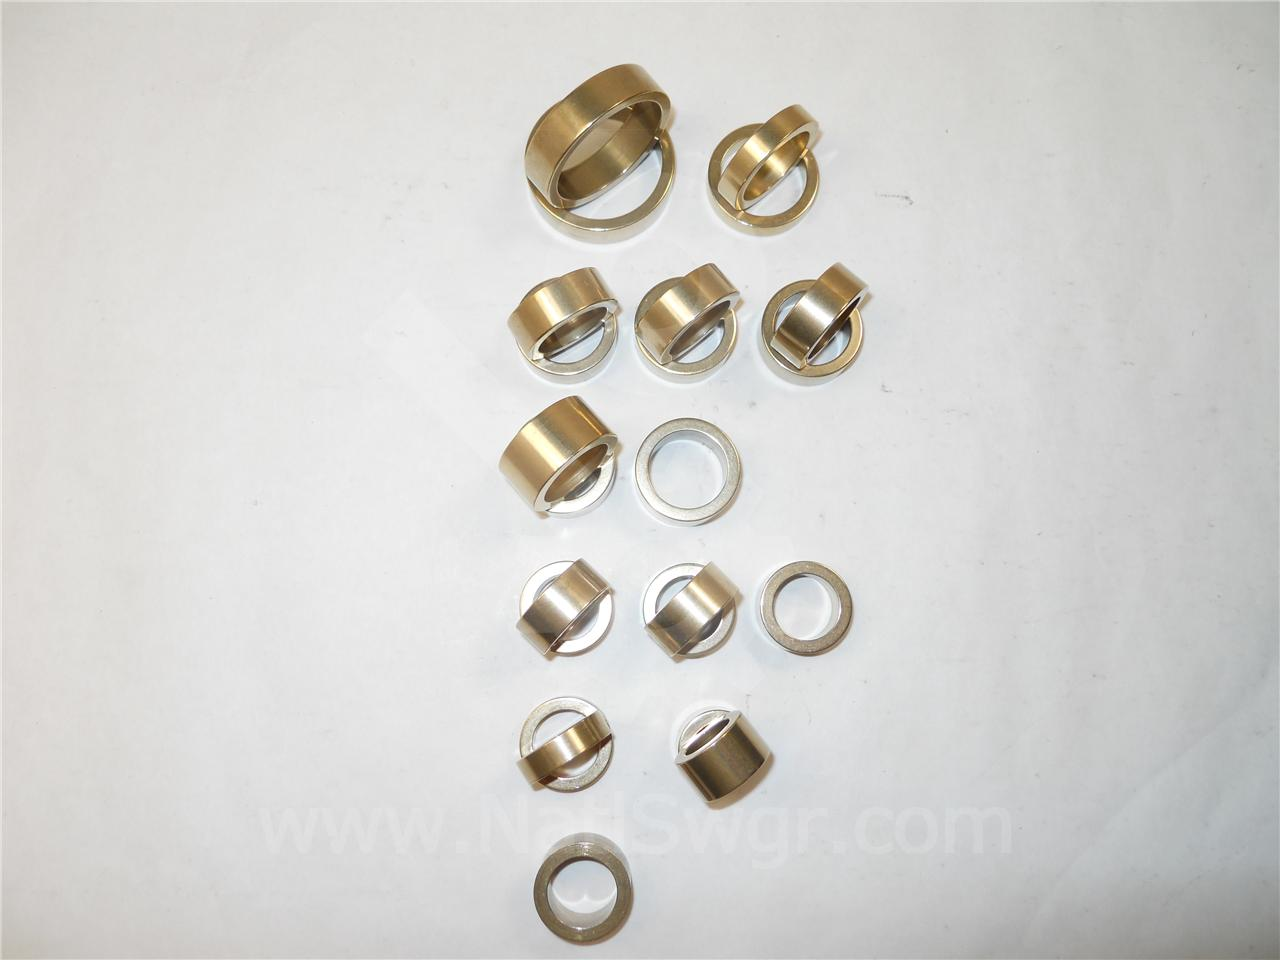 0156C9403G001 NSS ML-13 ALUMINIUM BRONZE BUSHING KIT NEW FOR GE MAGNE-BLAST